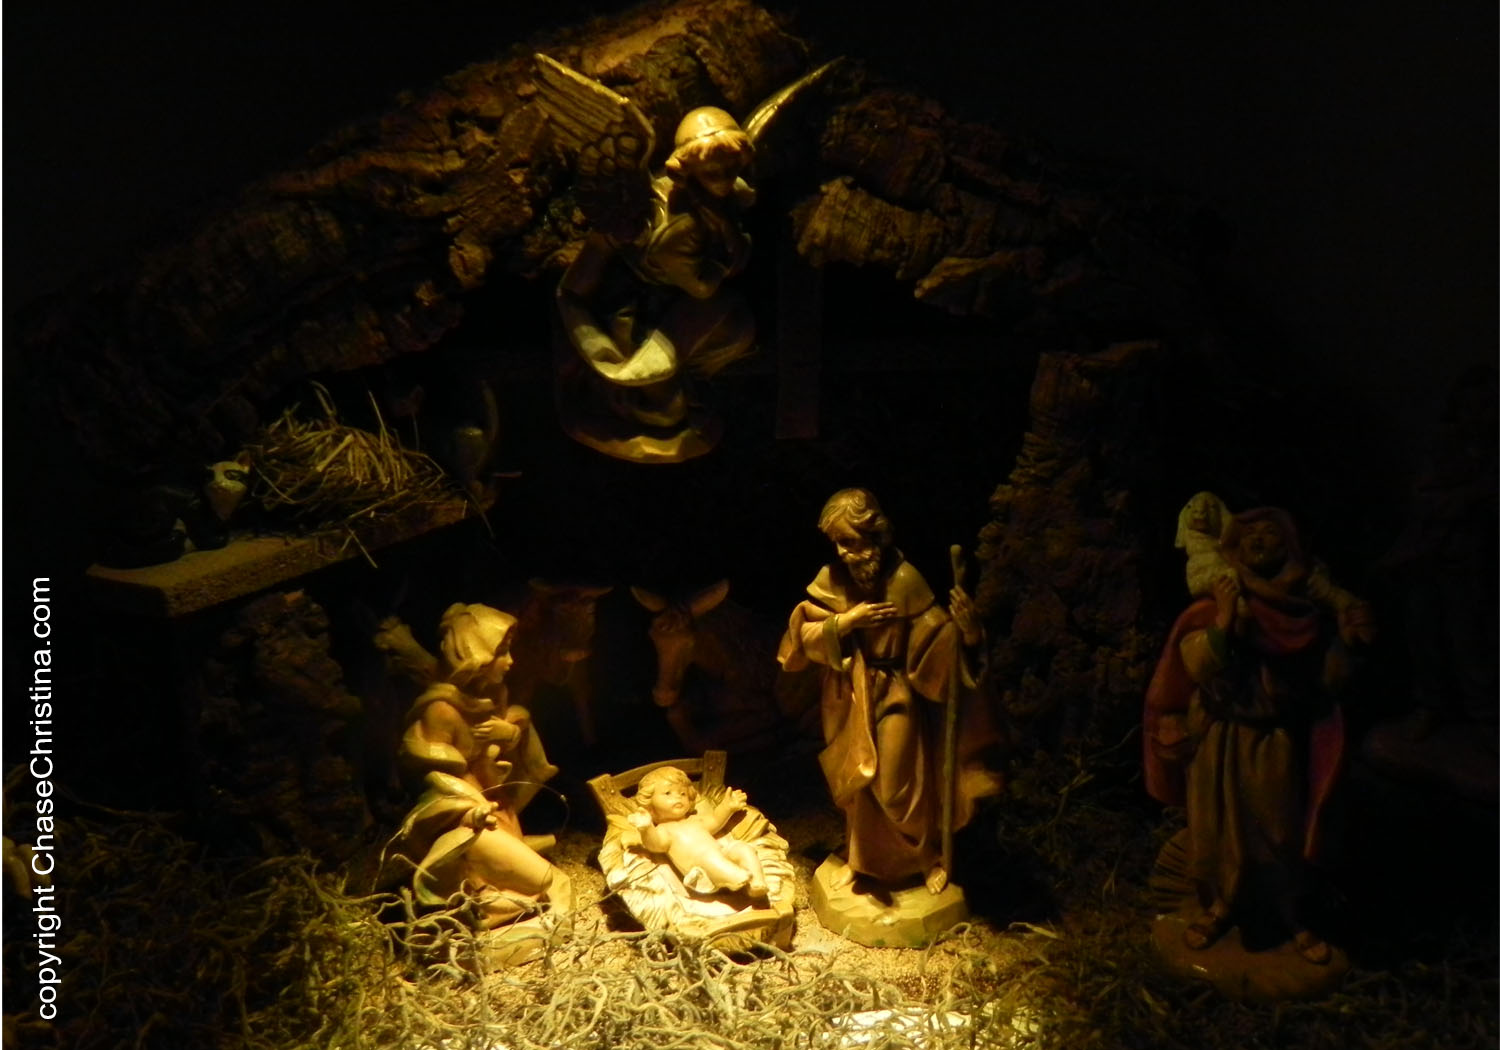 Nativity scene, Christmas, Jesus in manger